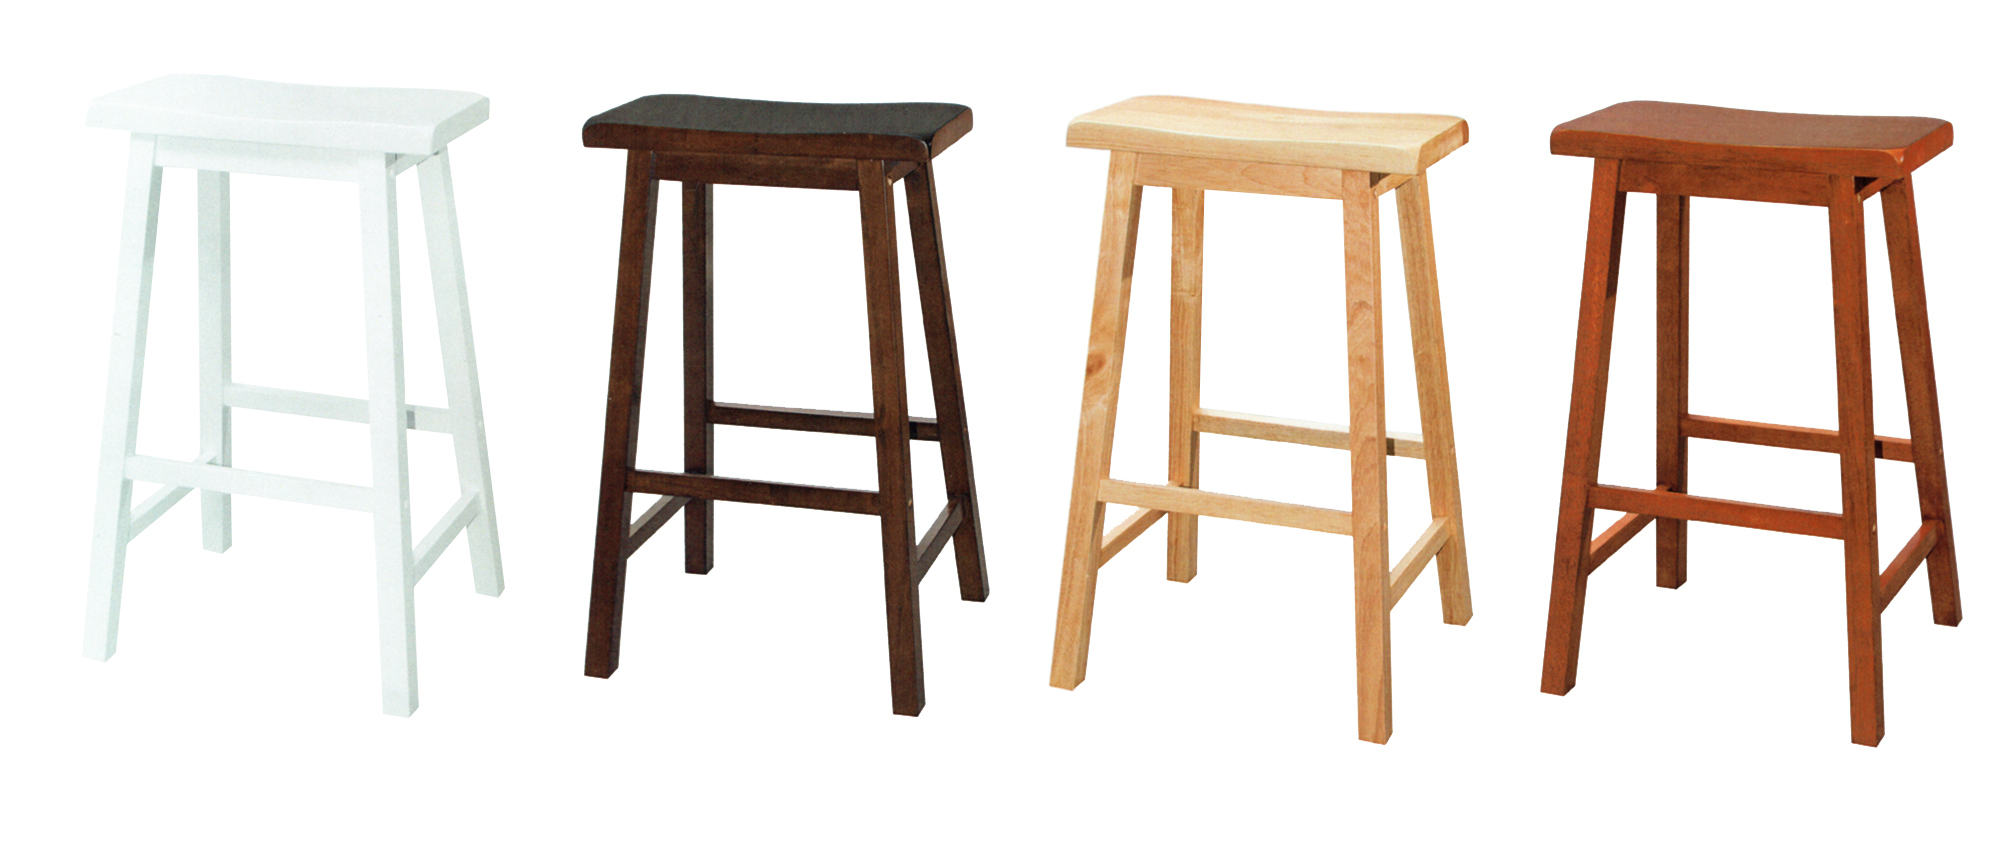 bar stool california.jpg